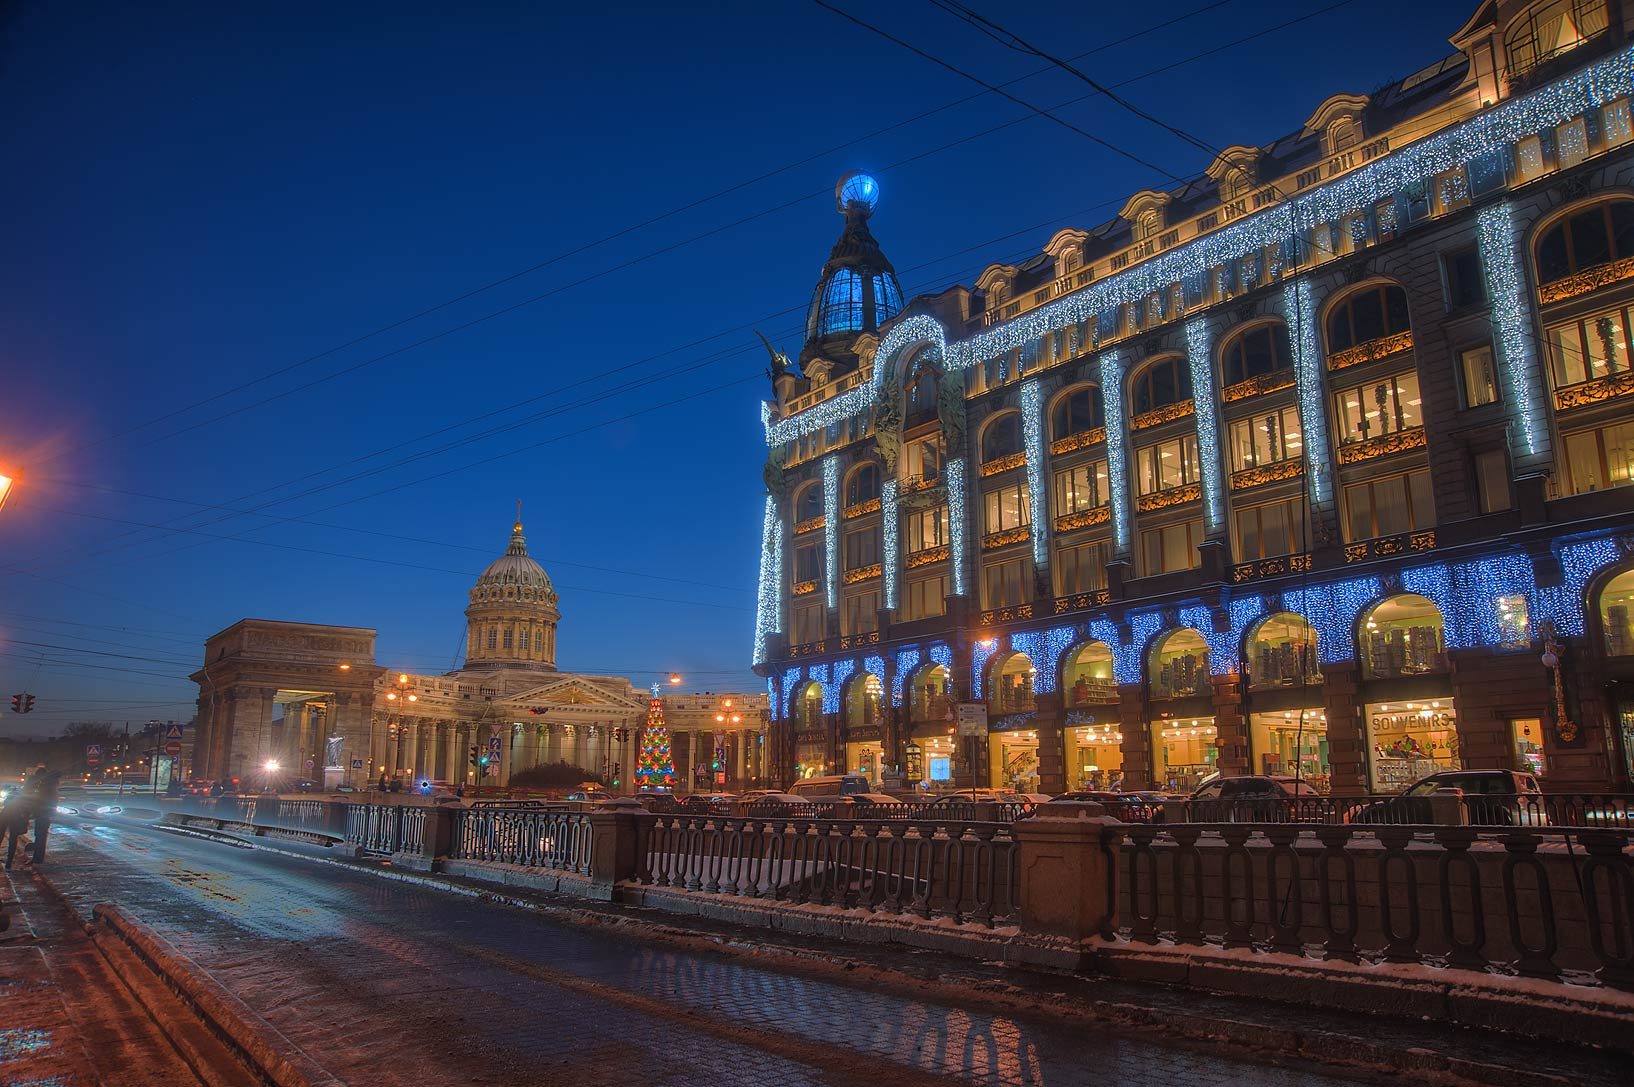 Singer House from Griboedov Canal. St.Petersburg, Russia